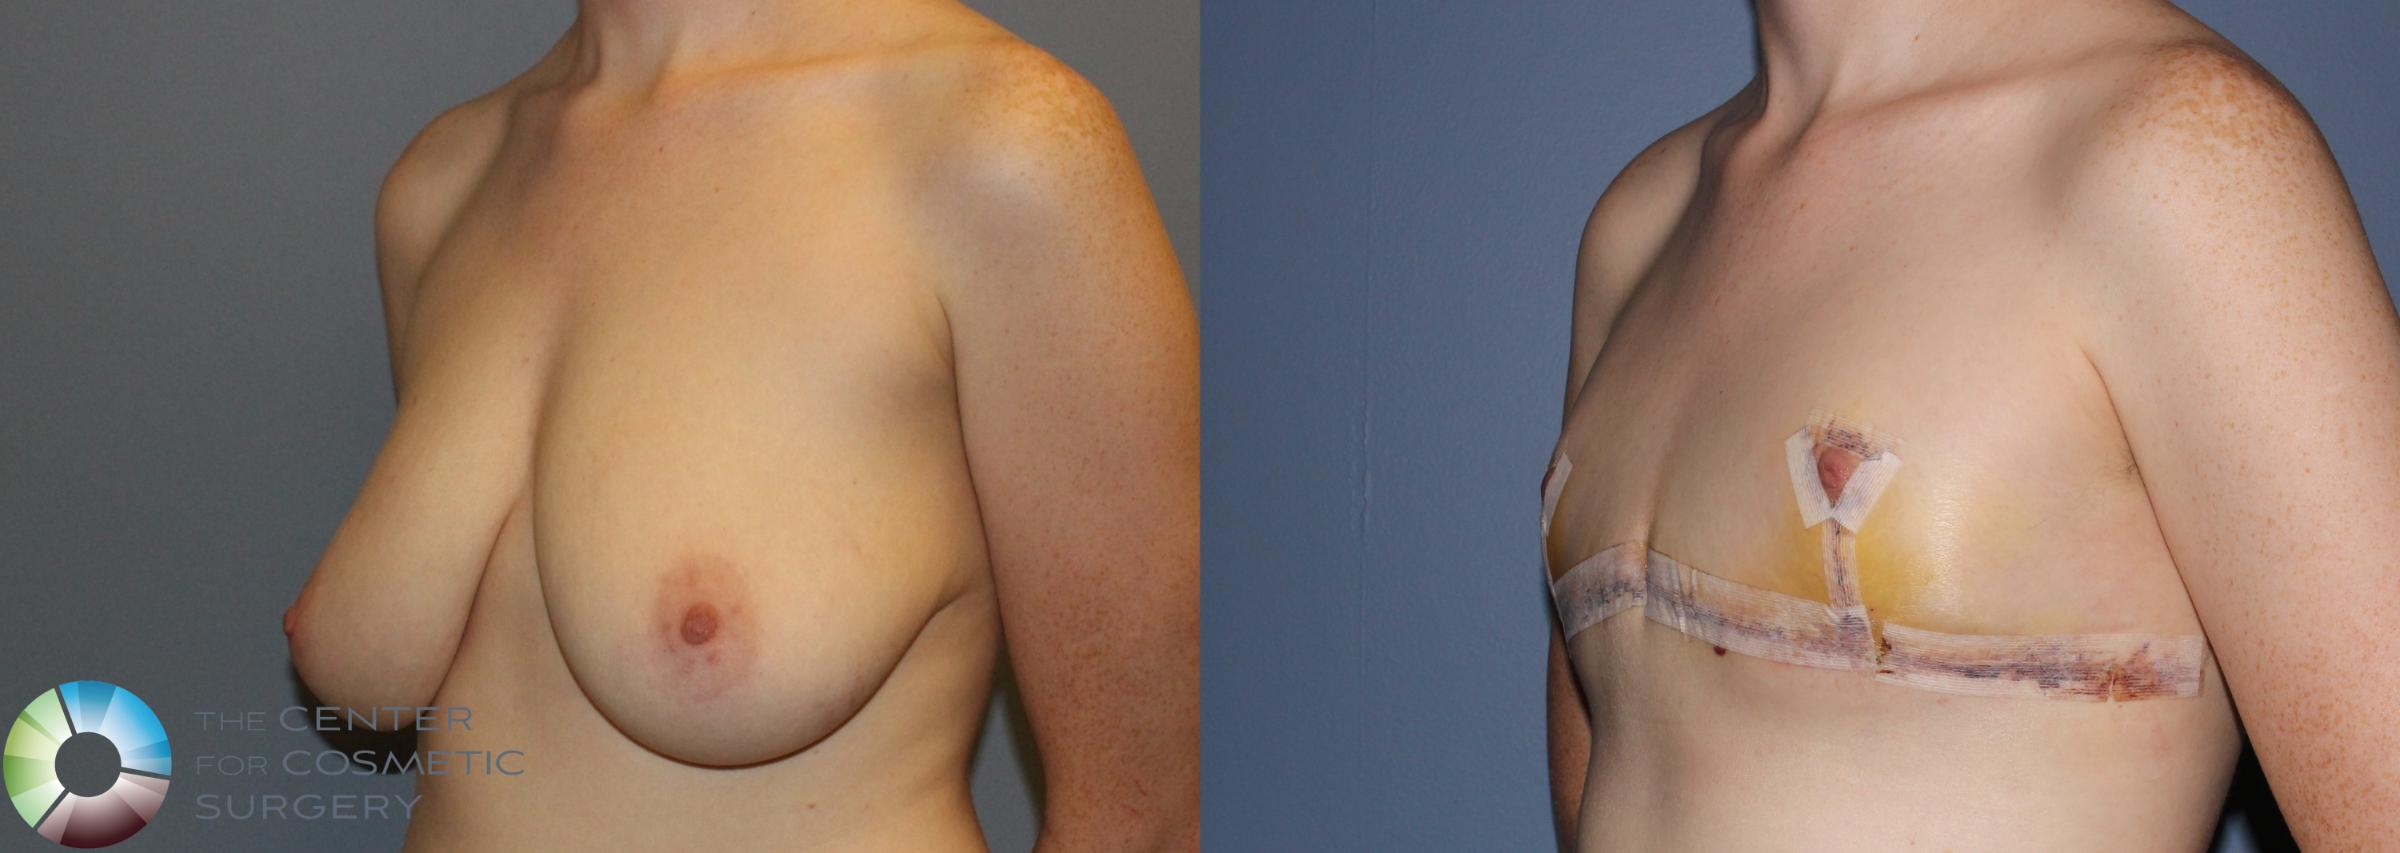 FTM Top Surgery/Chest Masculinization Case 11212 Before & After Left Oblique | Golden, CO | The Center for Cosmetic Surgery